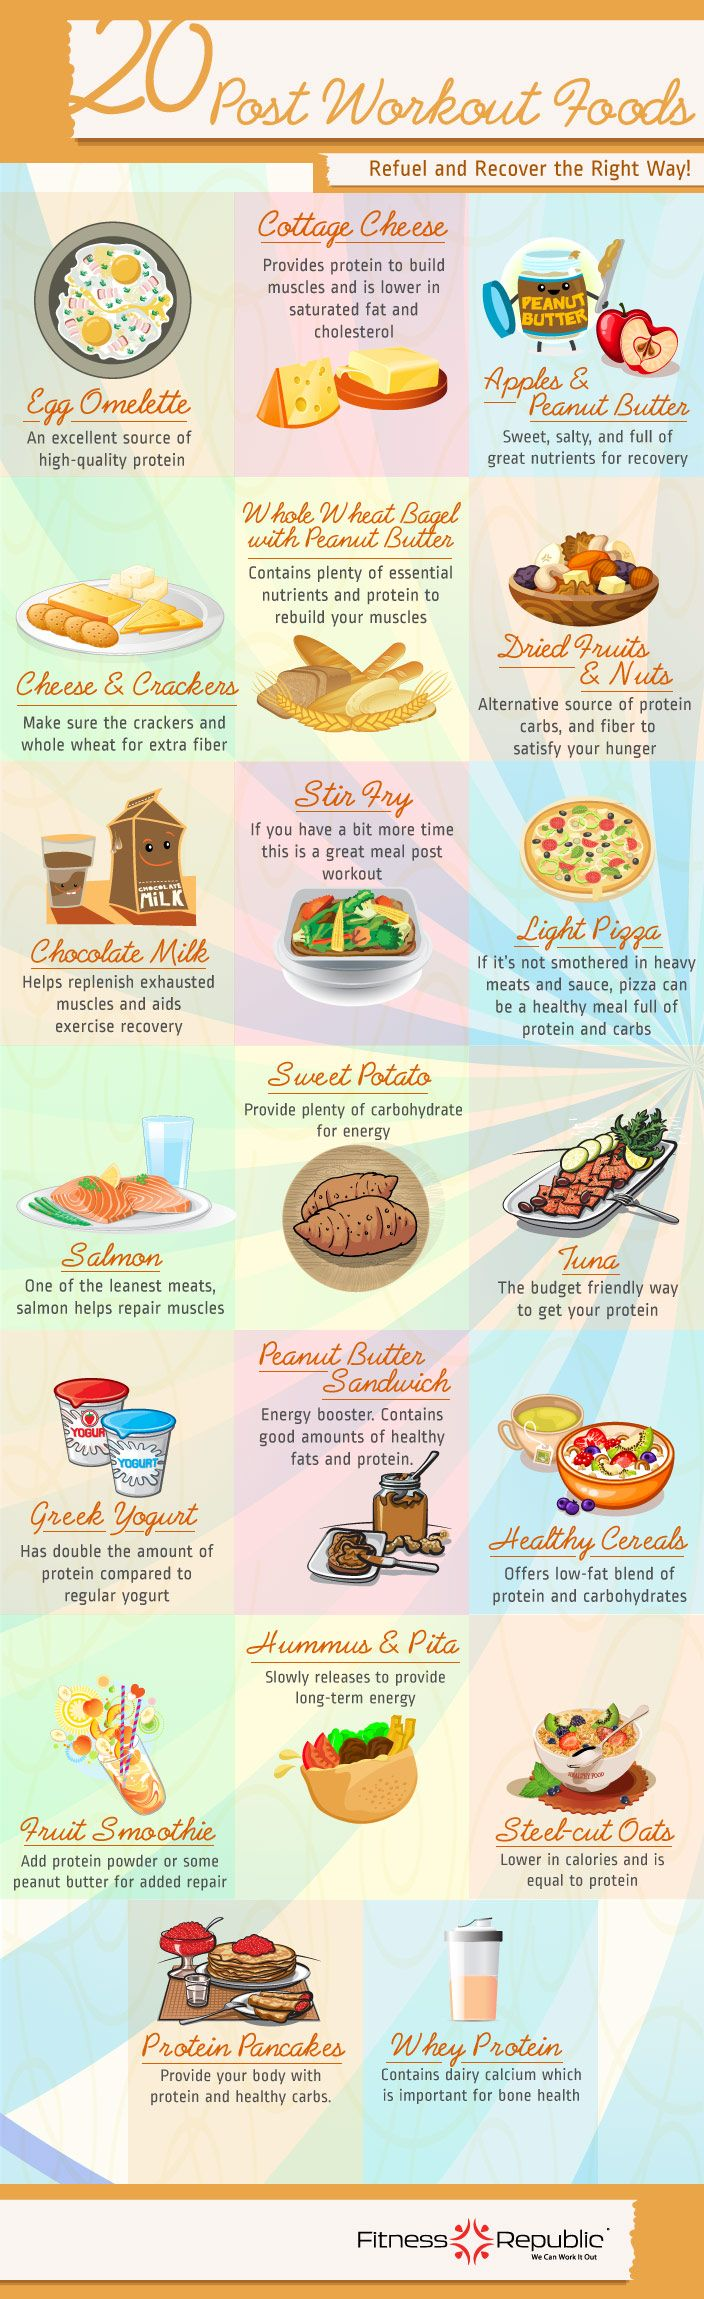 20 Post Workout Foods #workoutfood